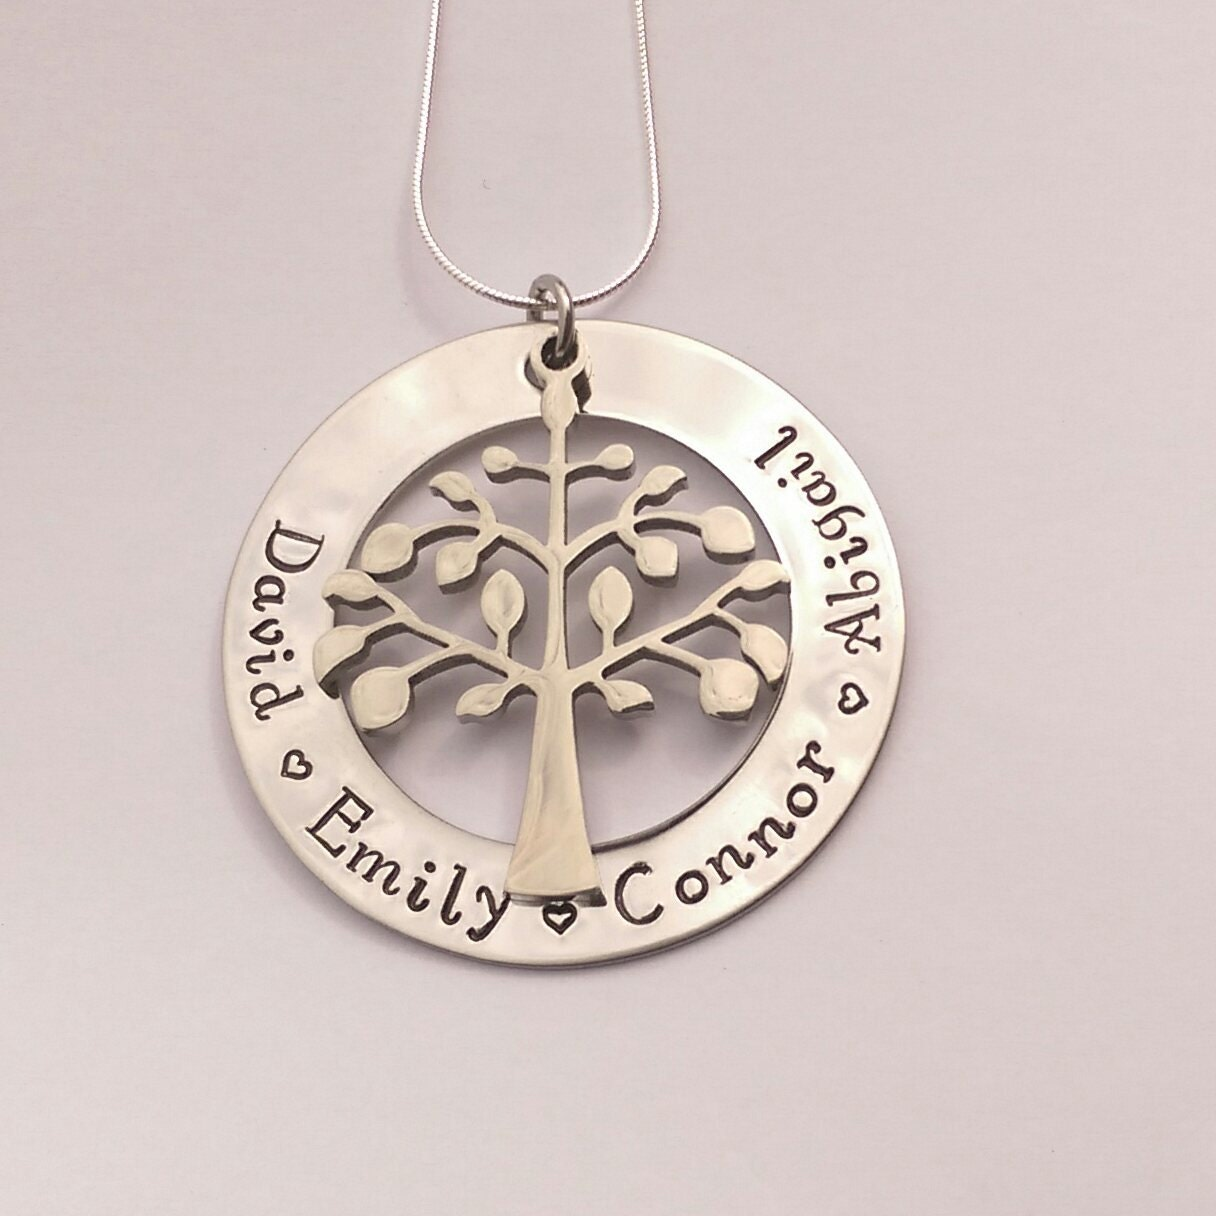 Personalised family tree necklace hand stamped - present for mum mom - personalized present for her - family name necklace, mothers day gift